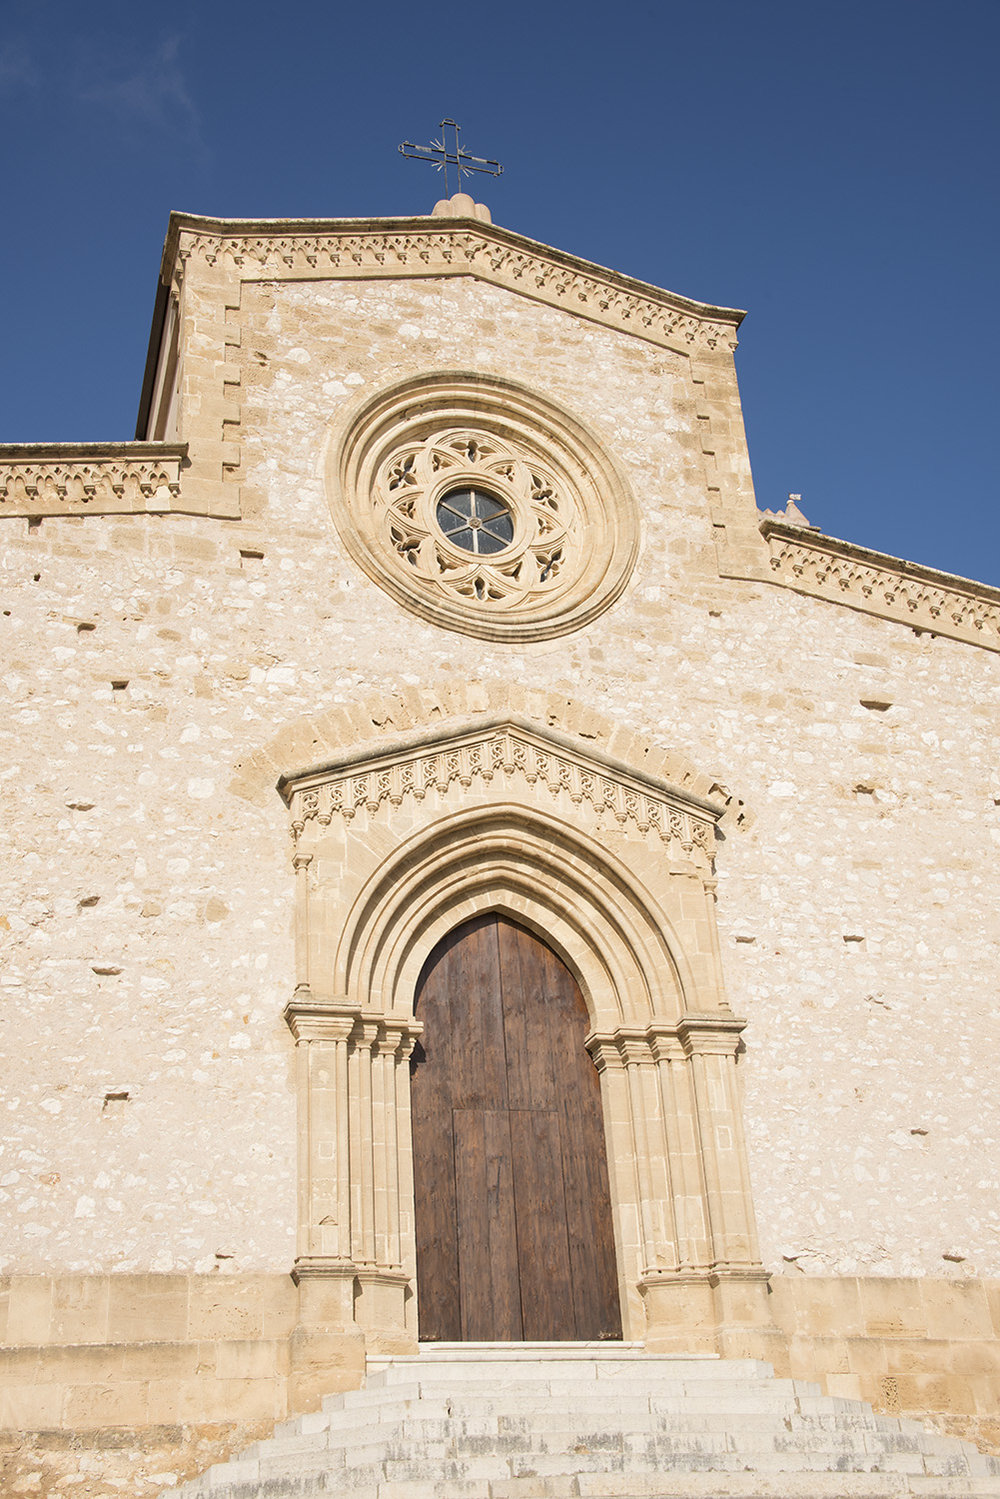 View of the main doors of the Sanctuary of Maria Santissima of Custonaci, Custonaci, Sicily